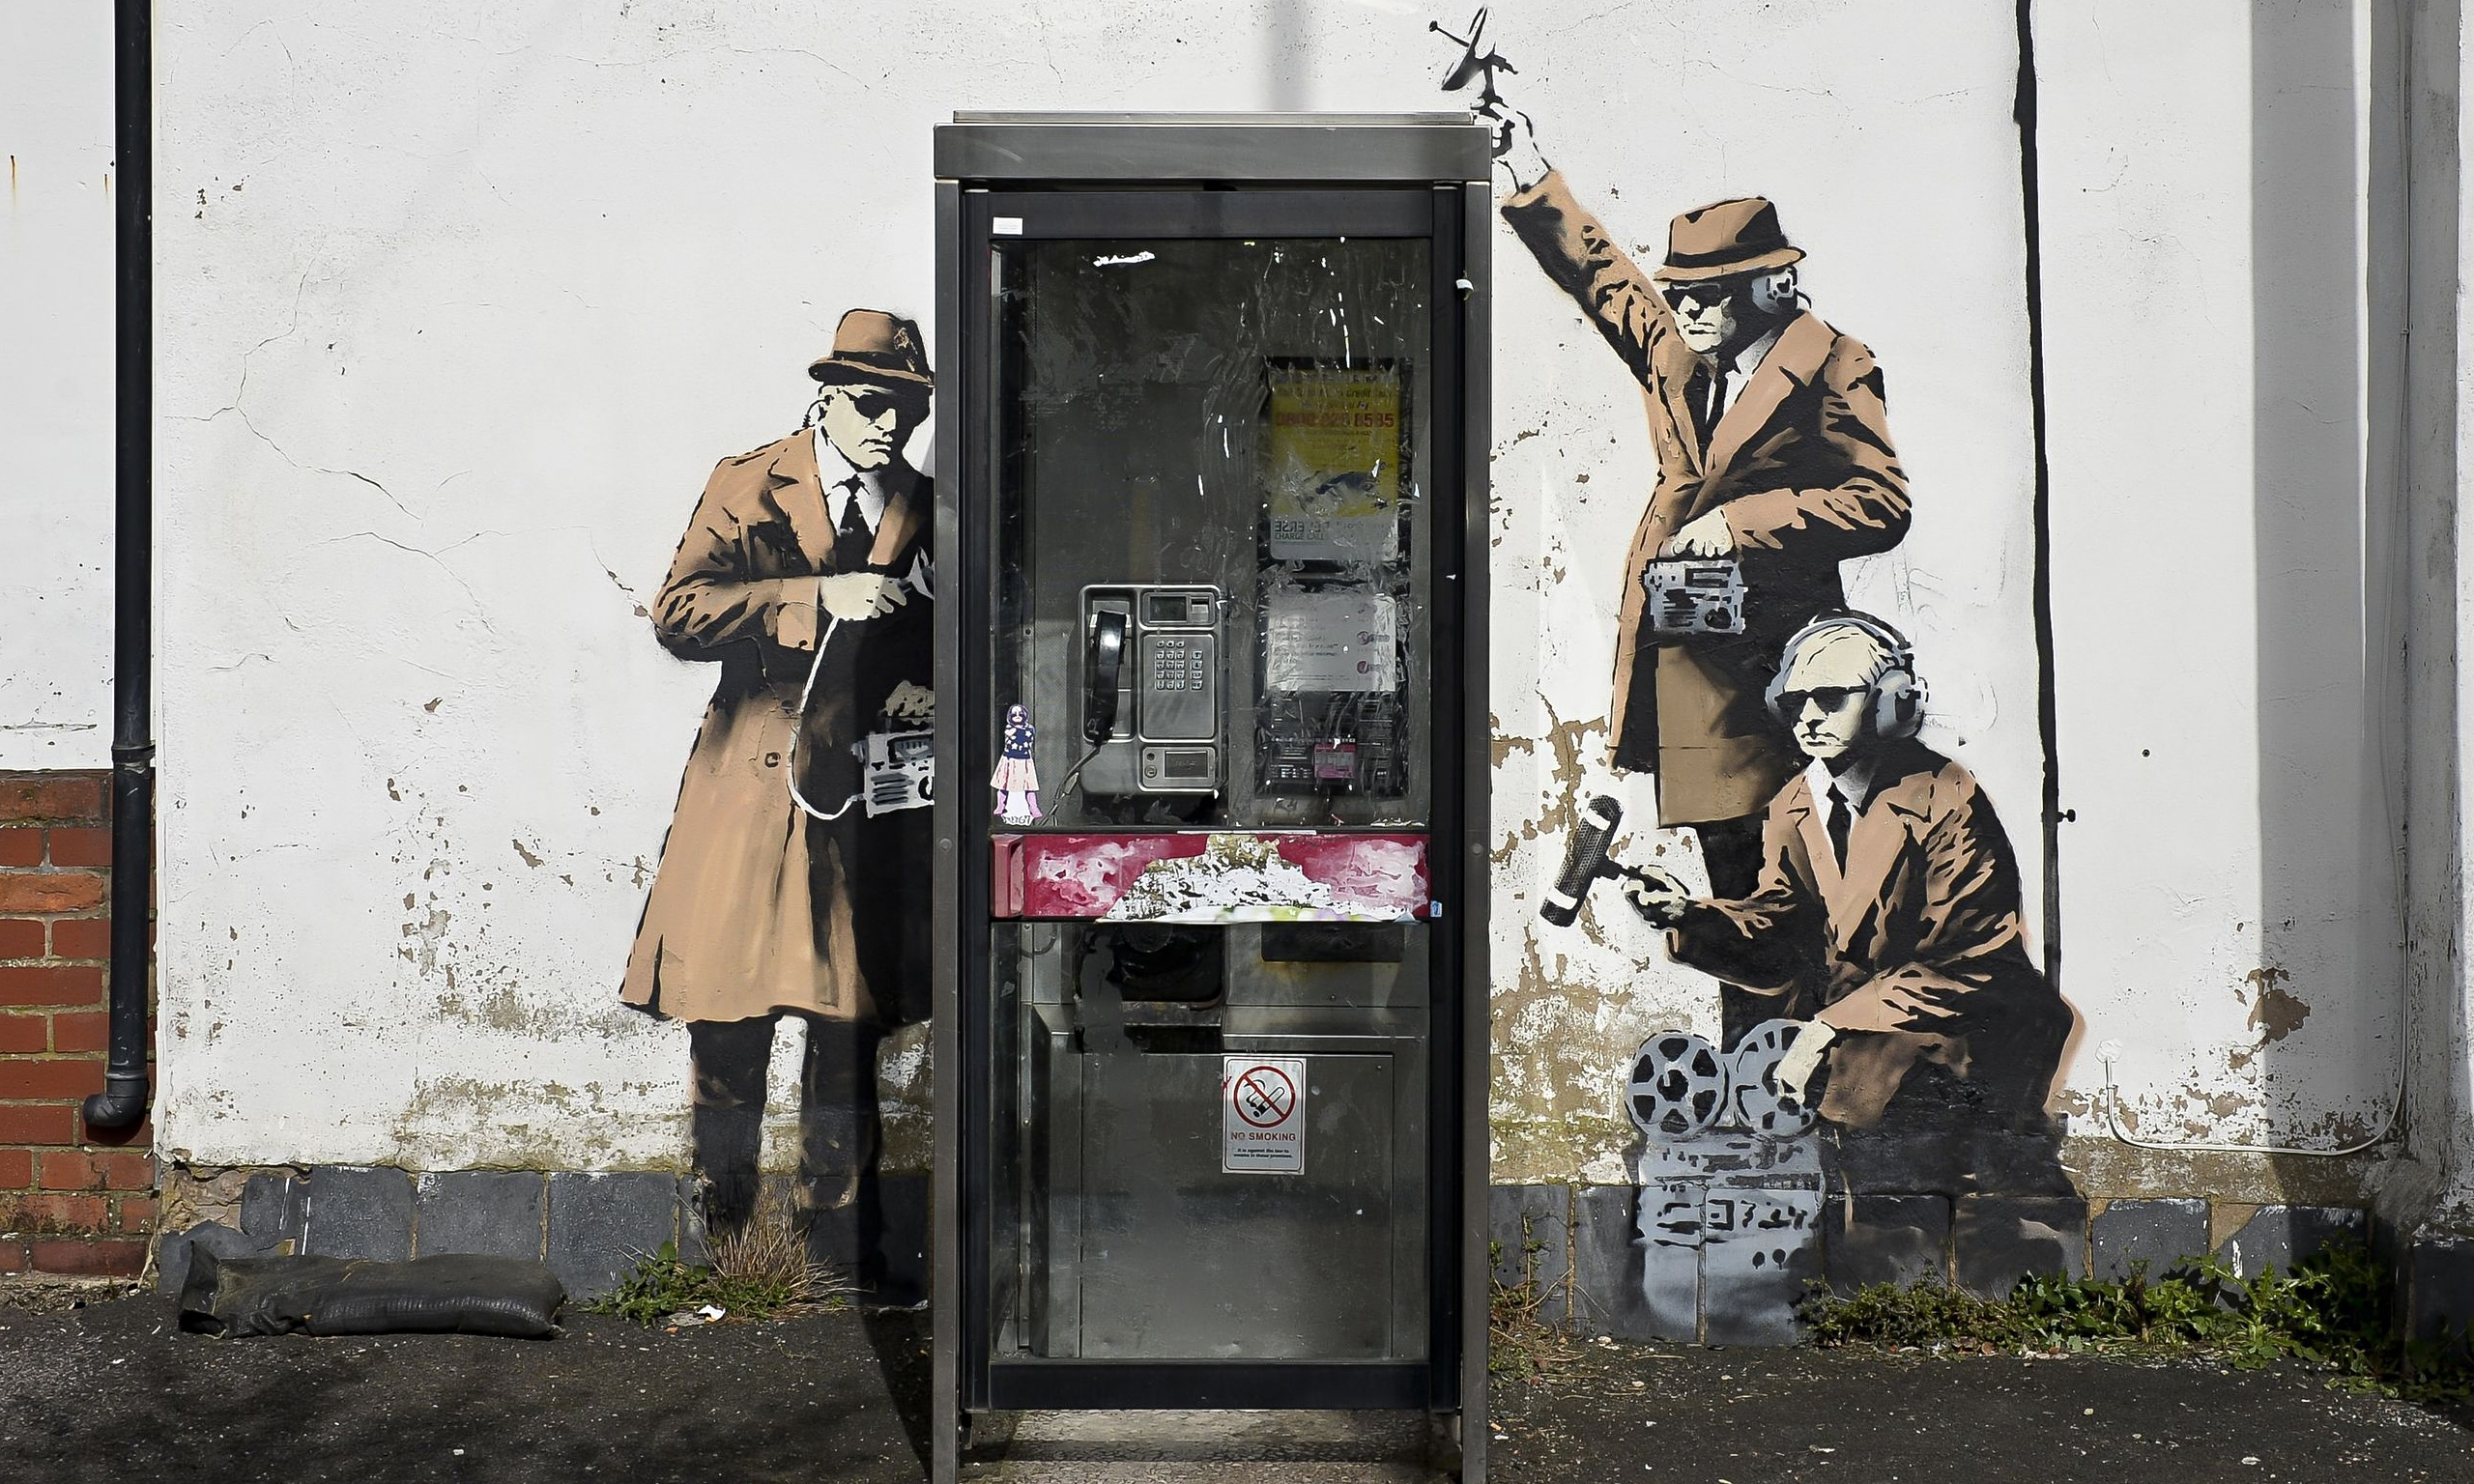 Banksy Spies Mural Maintenance Work On Property Halted